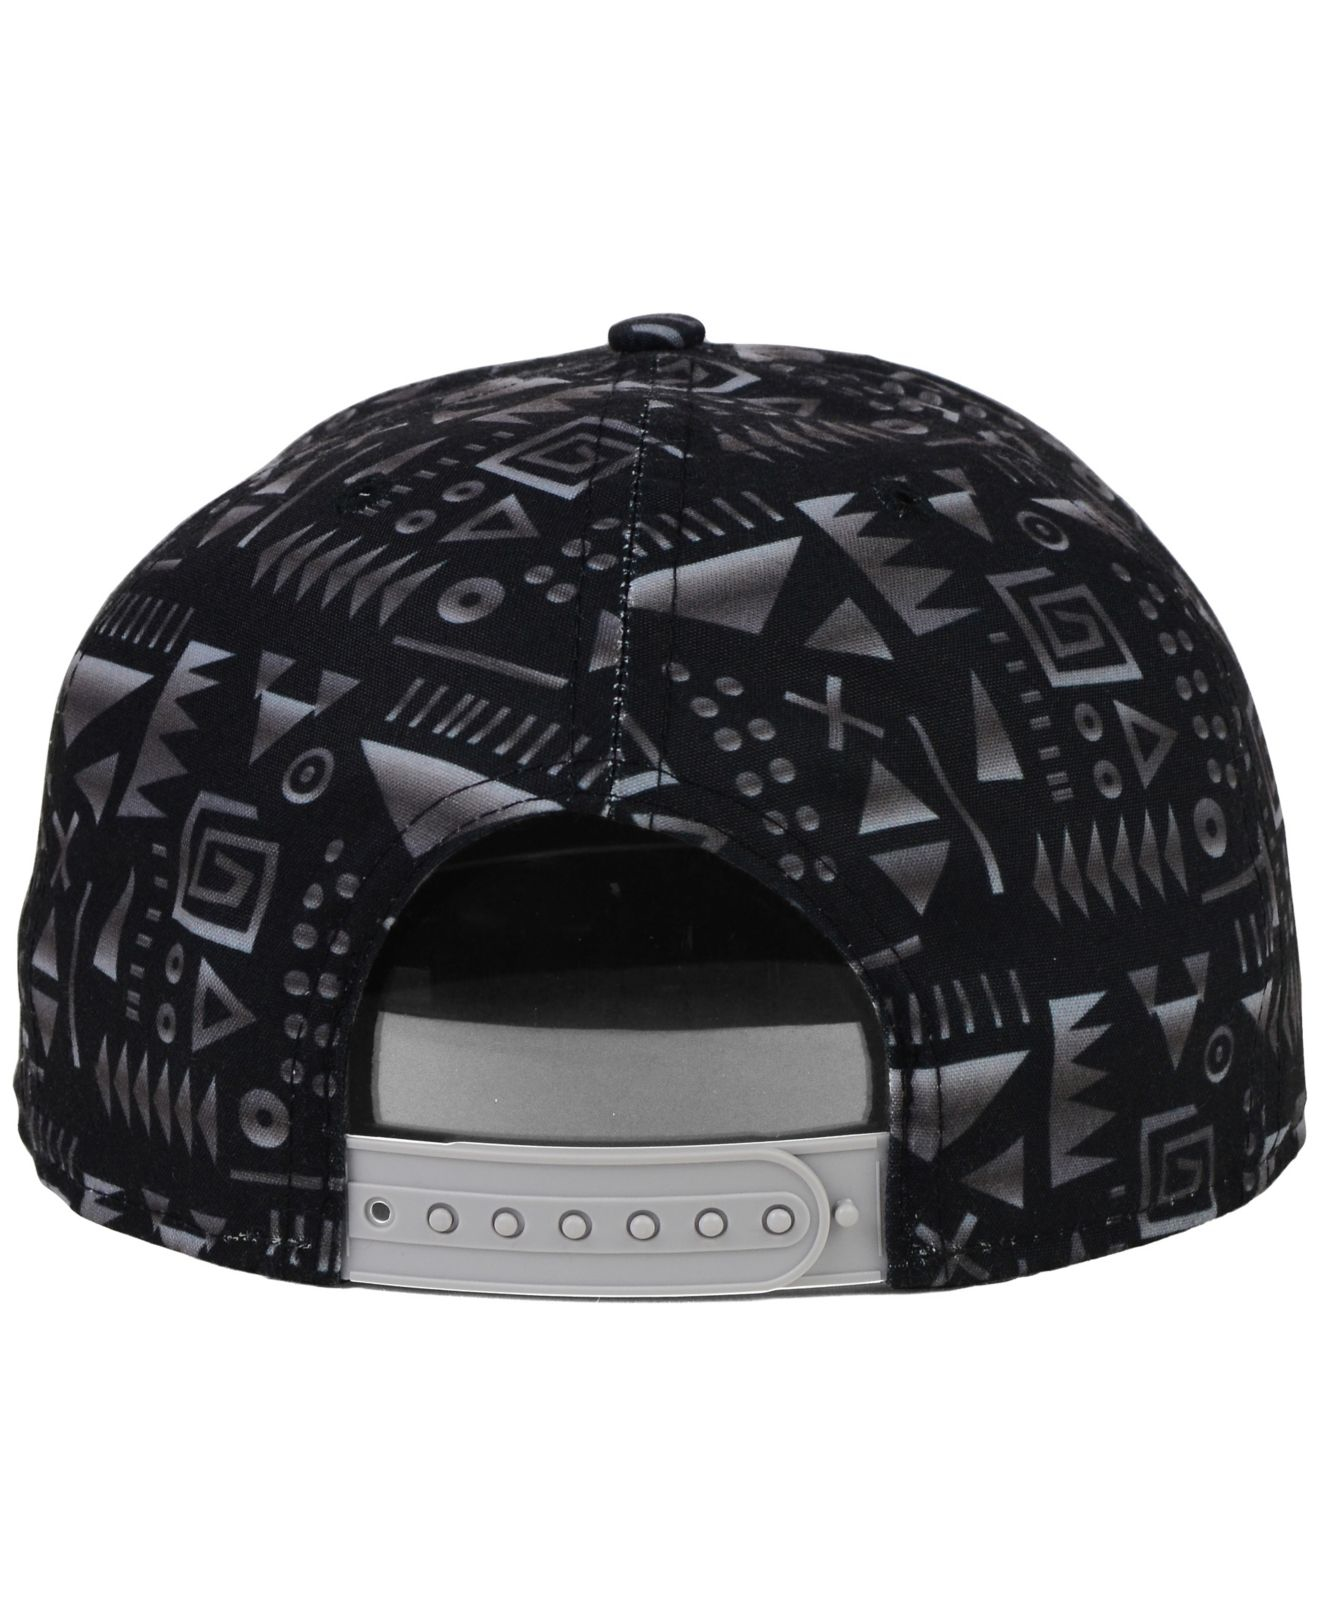 a4dcd4b68c8 ... new zealand lyst ktz chicago white sox geo 9fifty snapback cap in black  for men e50a1